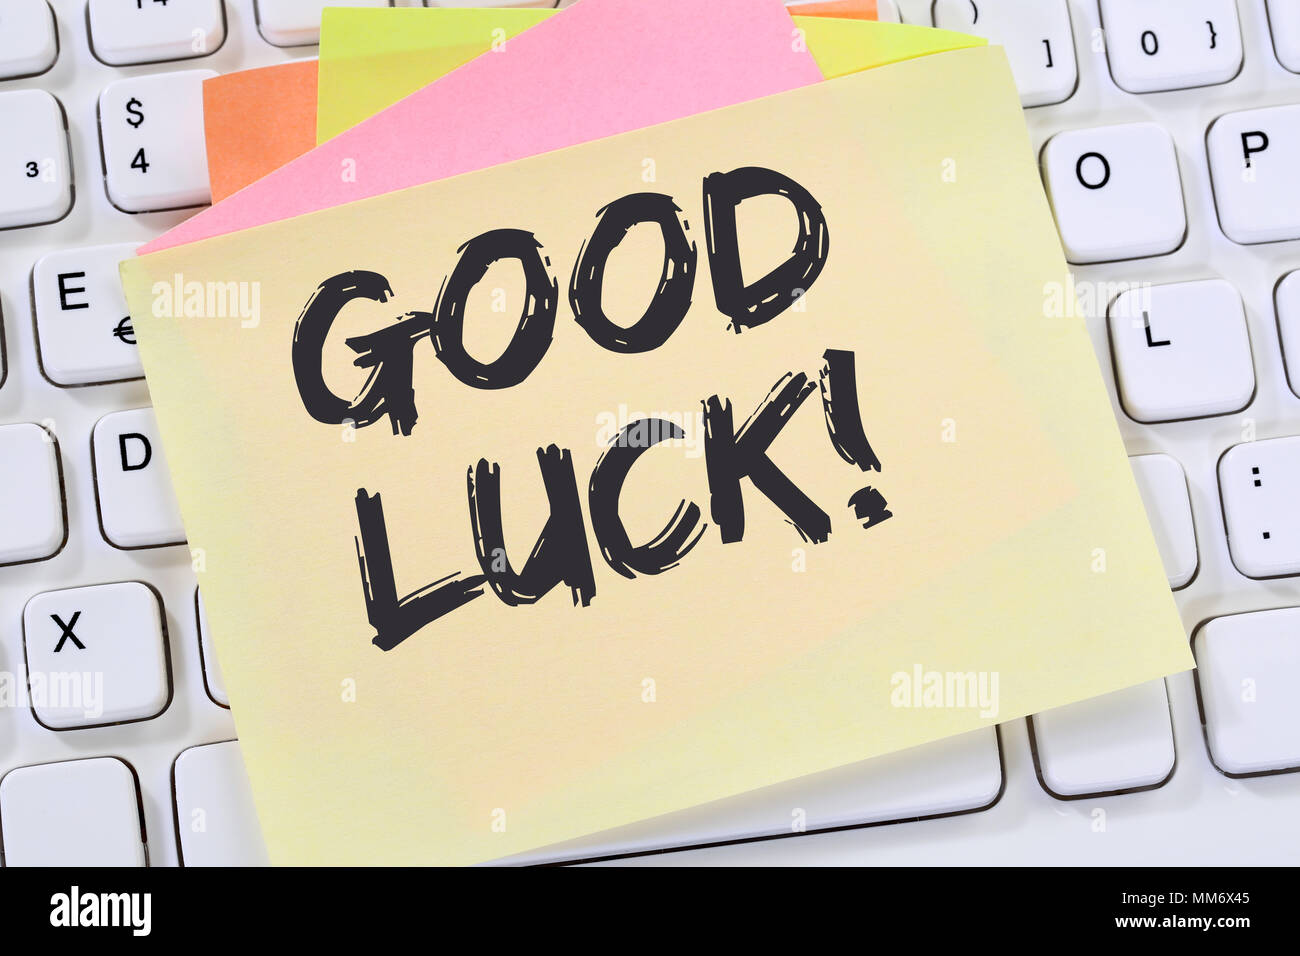 Good luck success successful test wish wishing business note paper computer keyboard - Stock Image